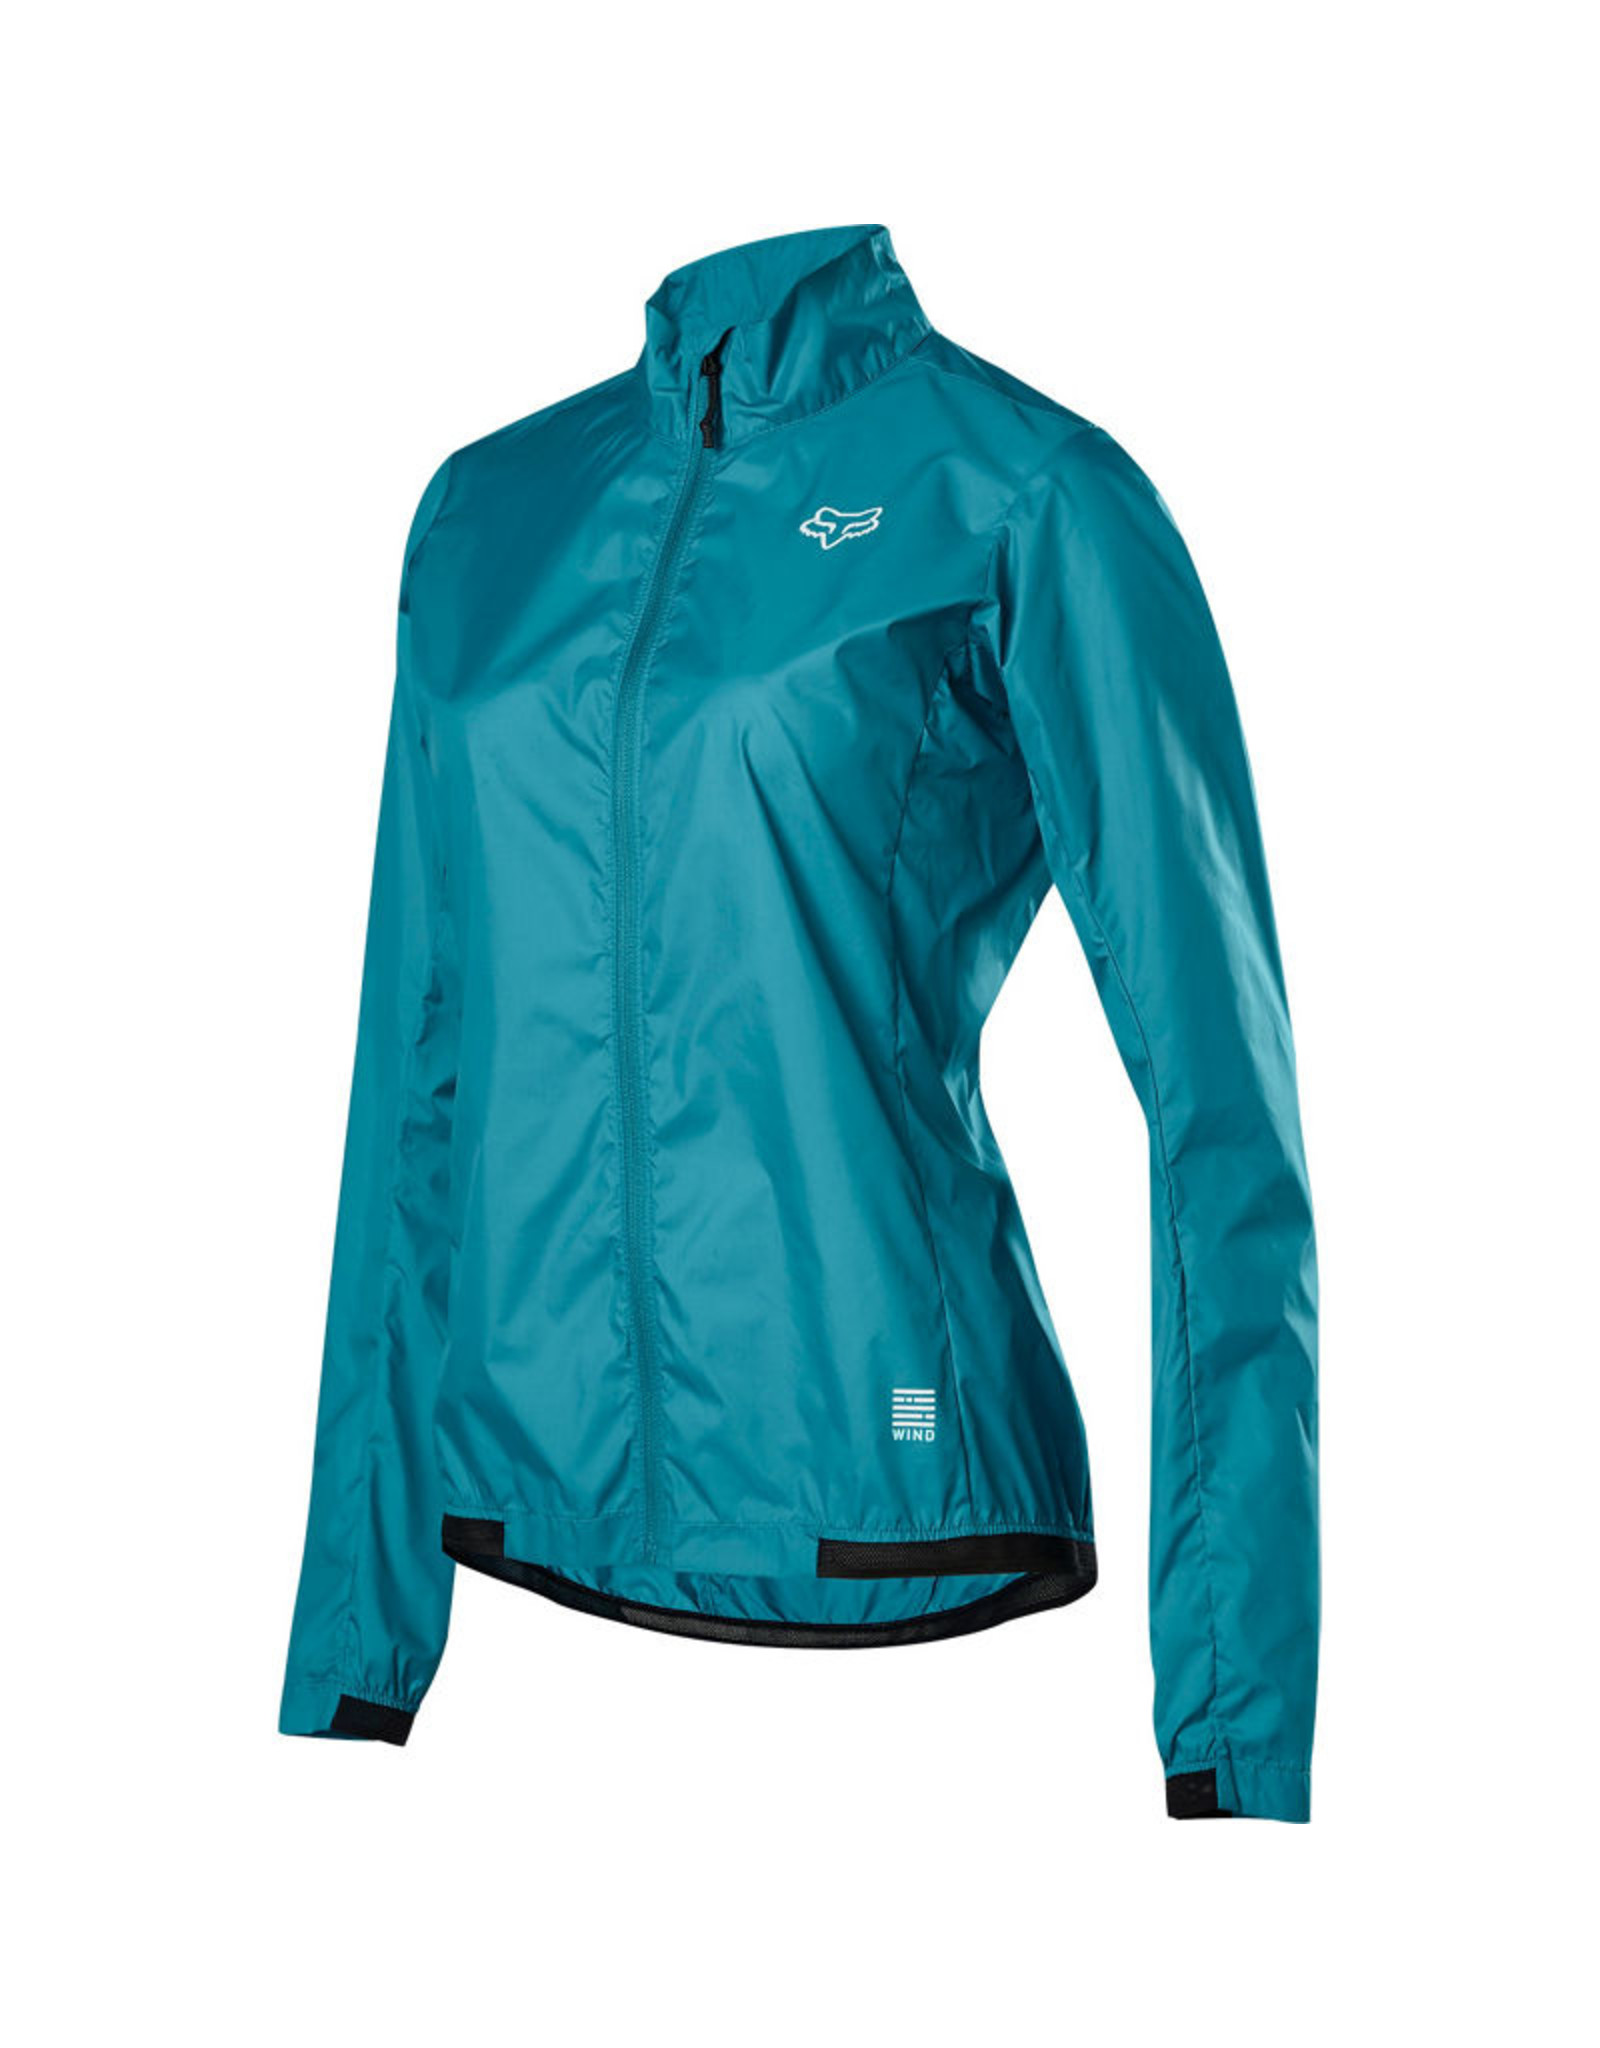 FOX HEAD CLOTHING WMNS DEFEND WIND JACKET AQUA (Reg price $99.95)